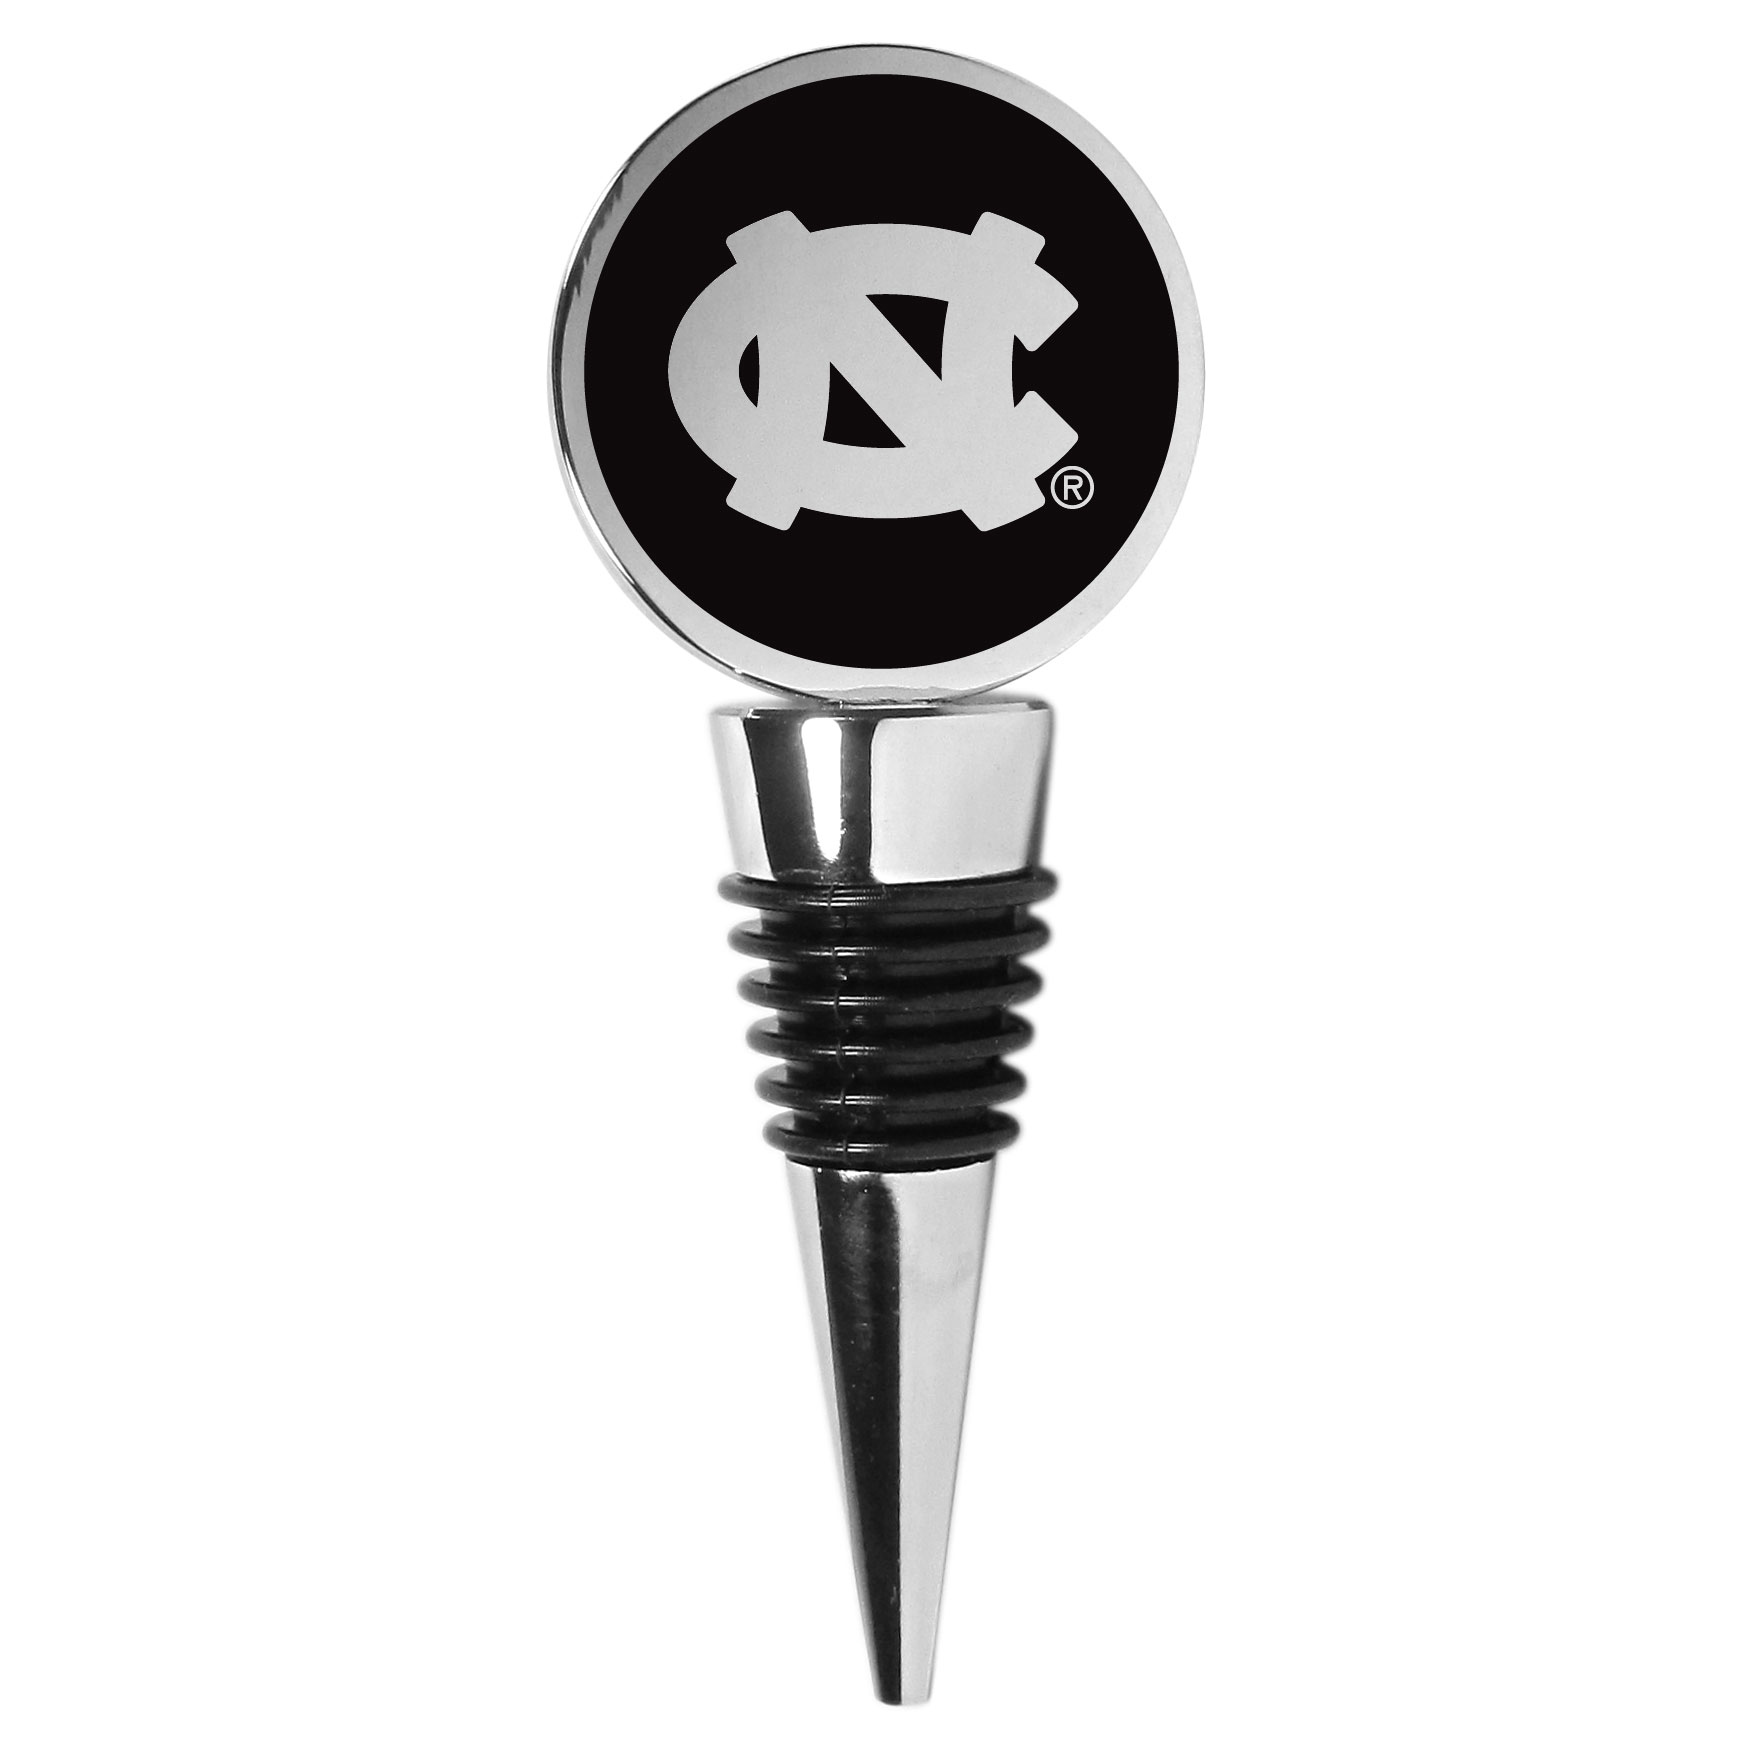 N. Carolina Tar Heels Wine Stopper - This beautiful N. Carolina Tar Heels wine stopper has a classy monochromatic logo on the top disc. The tapered rubber rings allow you to create a tight seal on multiple sizes of wine bottles so that you are able to preserve the wine for later enjoyment. This a perfect addition to a game day celebration.